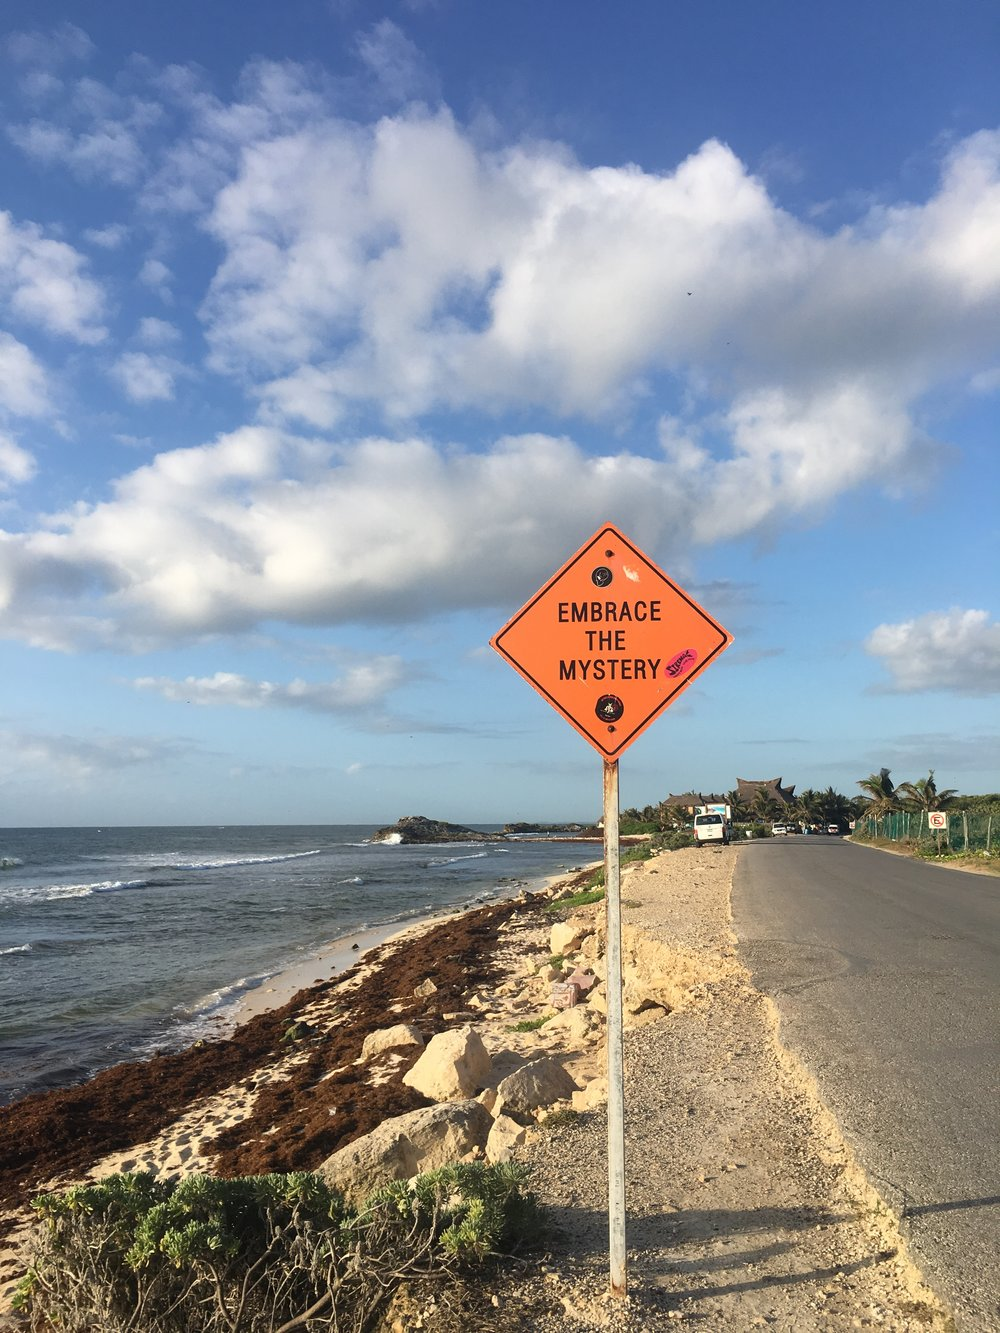 I loved the inspirational signs along the Tulum beach road.